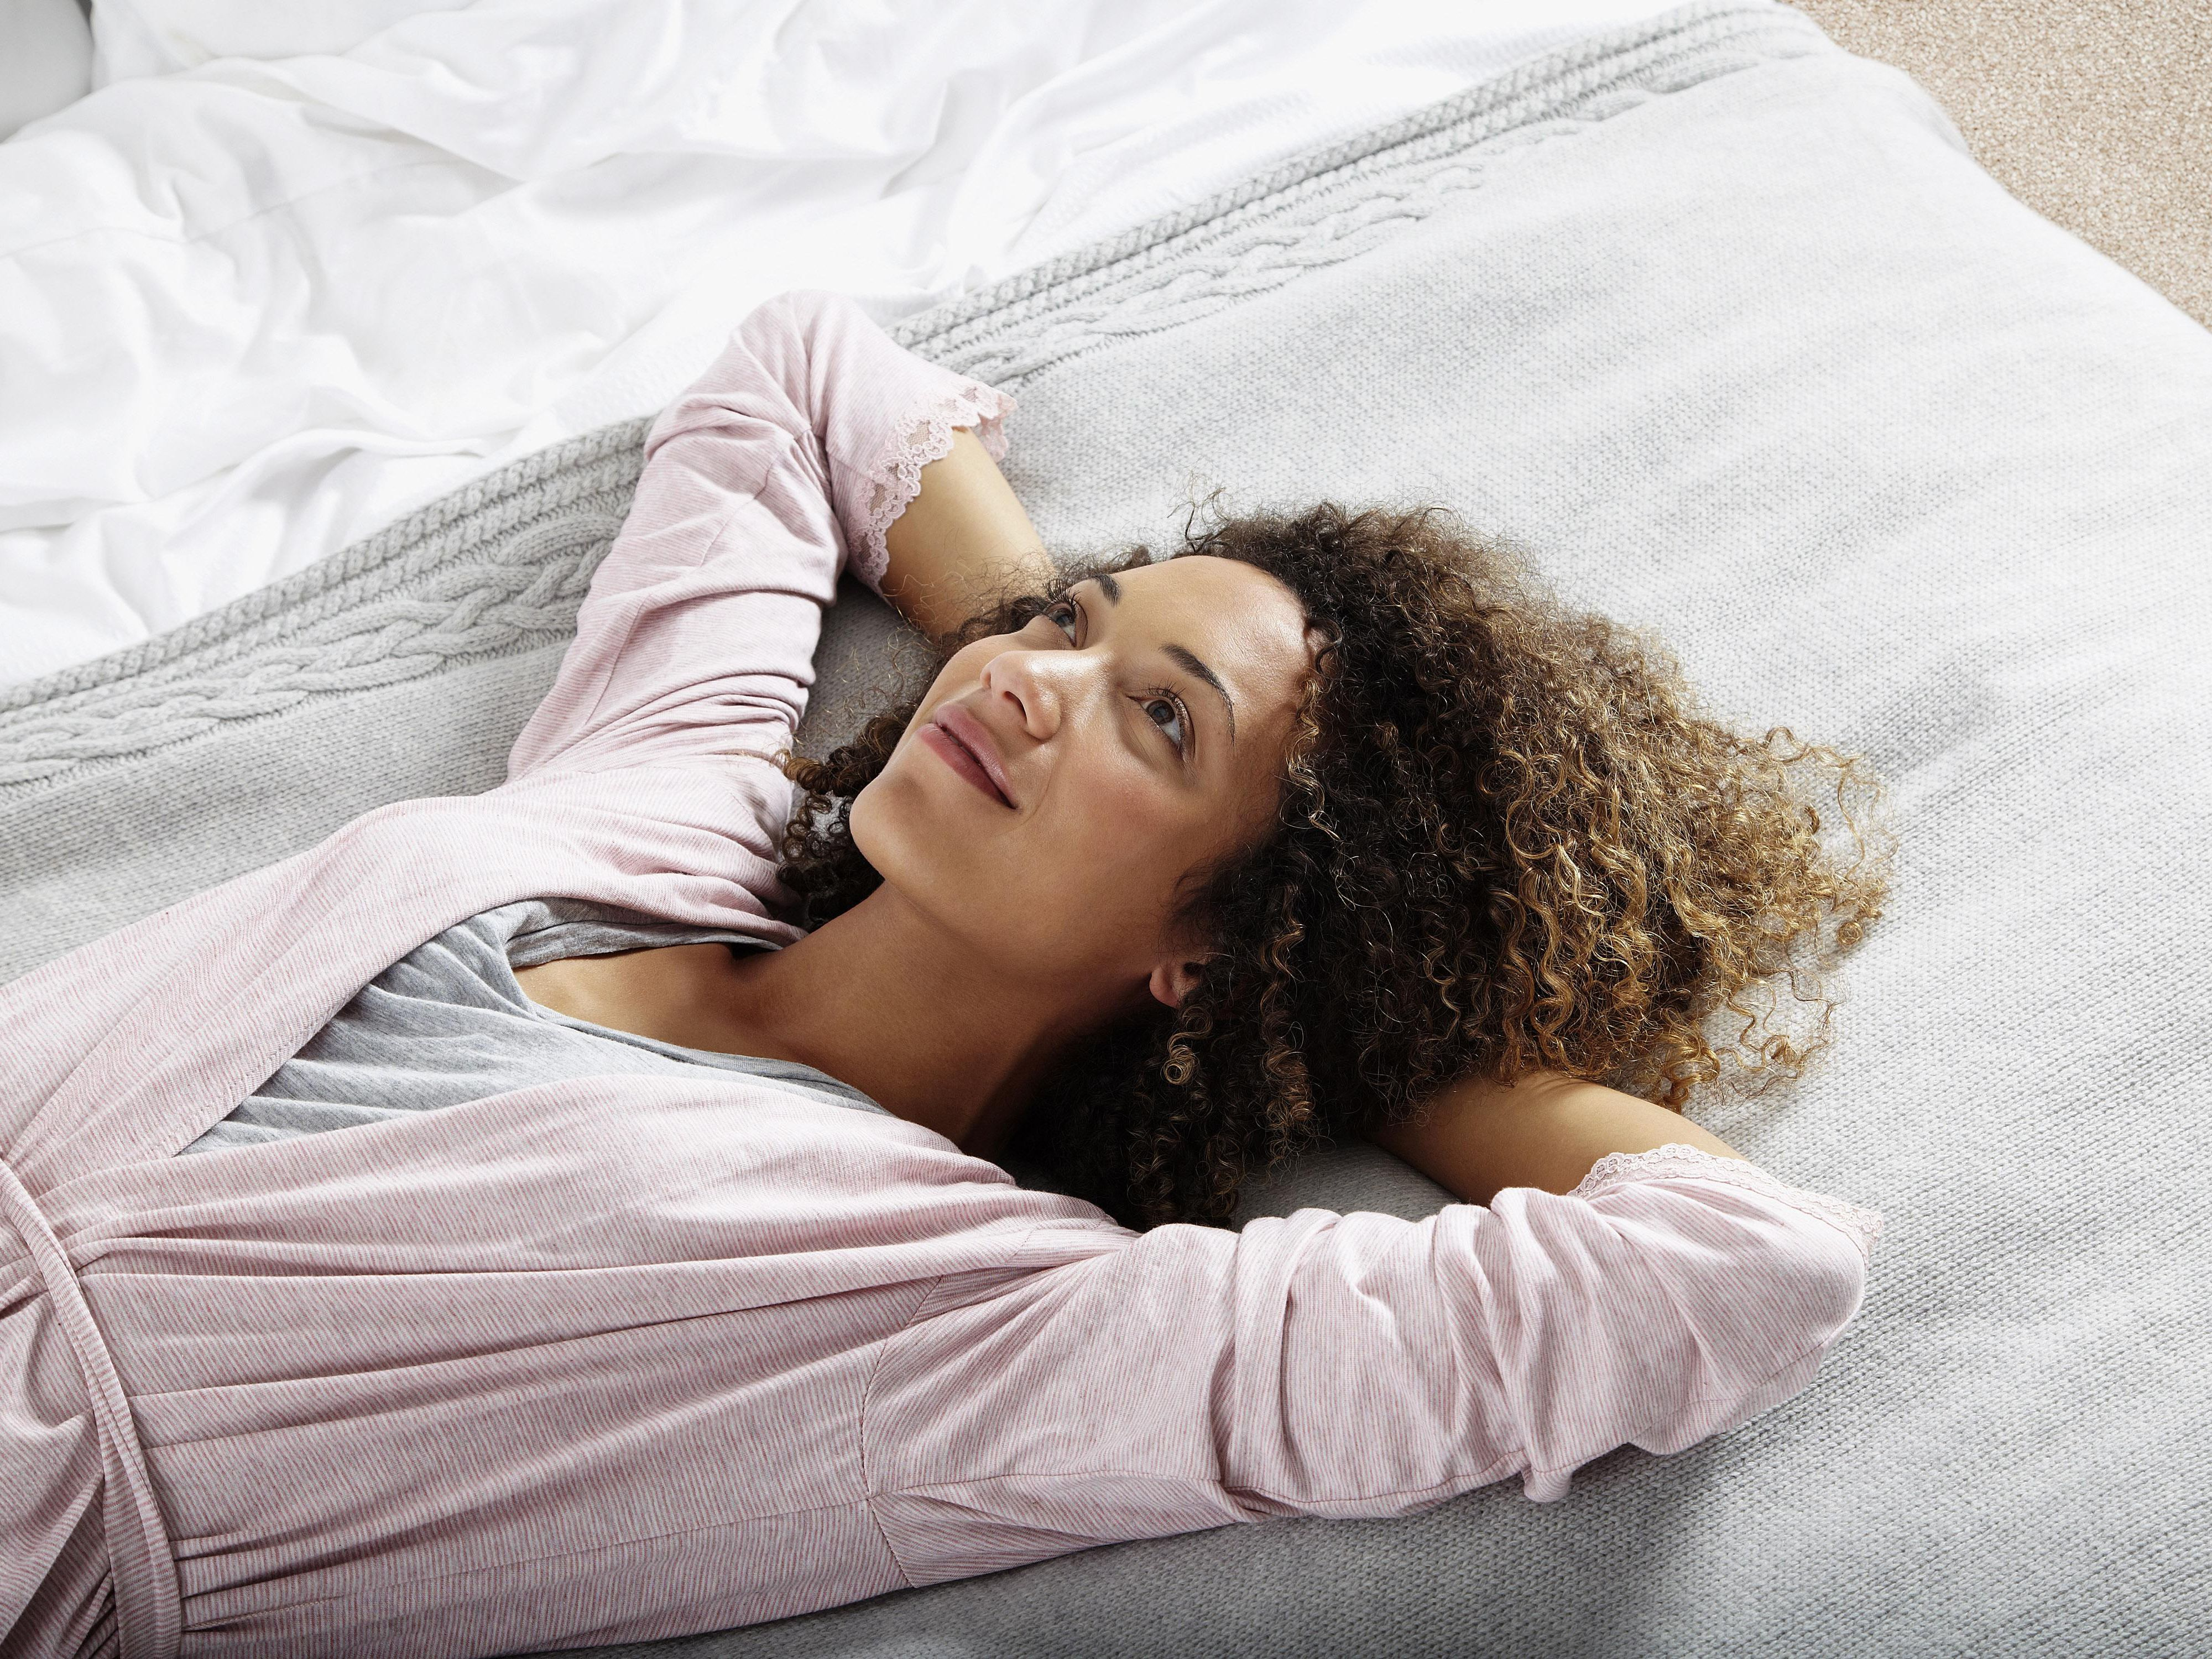 How Soon After Sex Can You Get Pregnant?